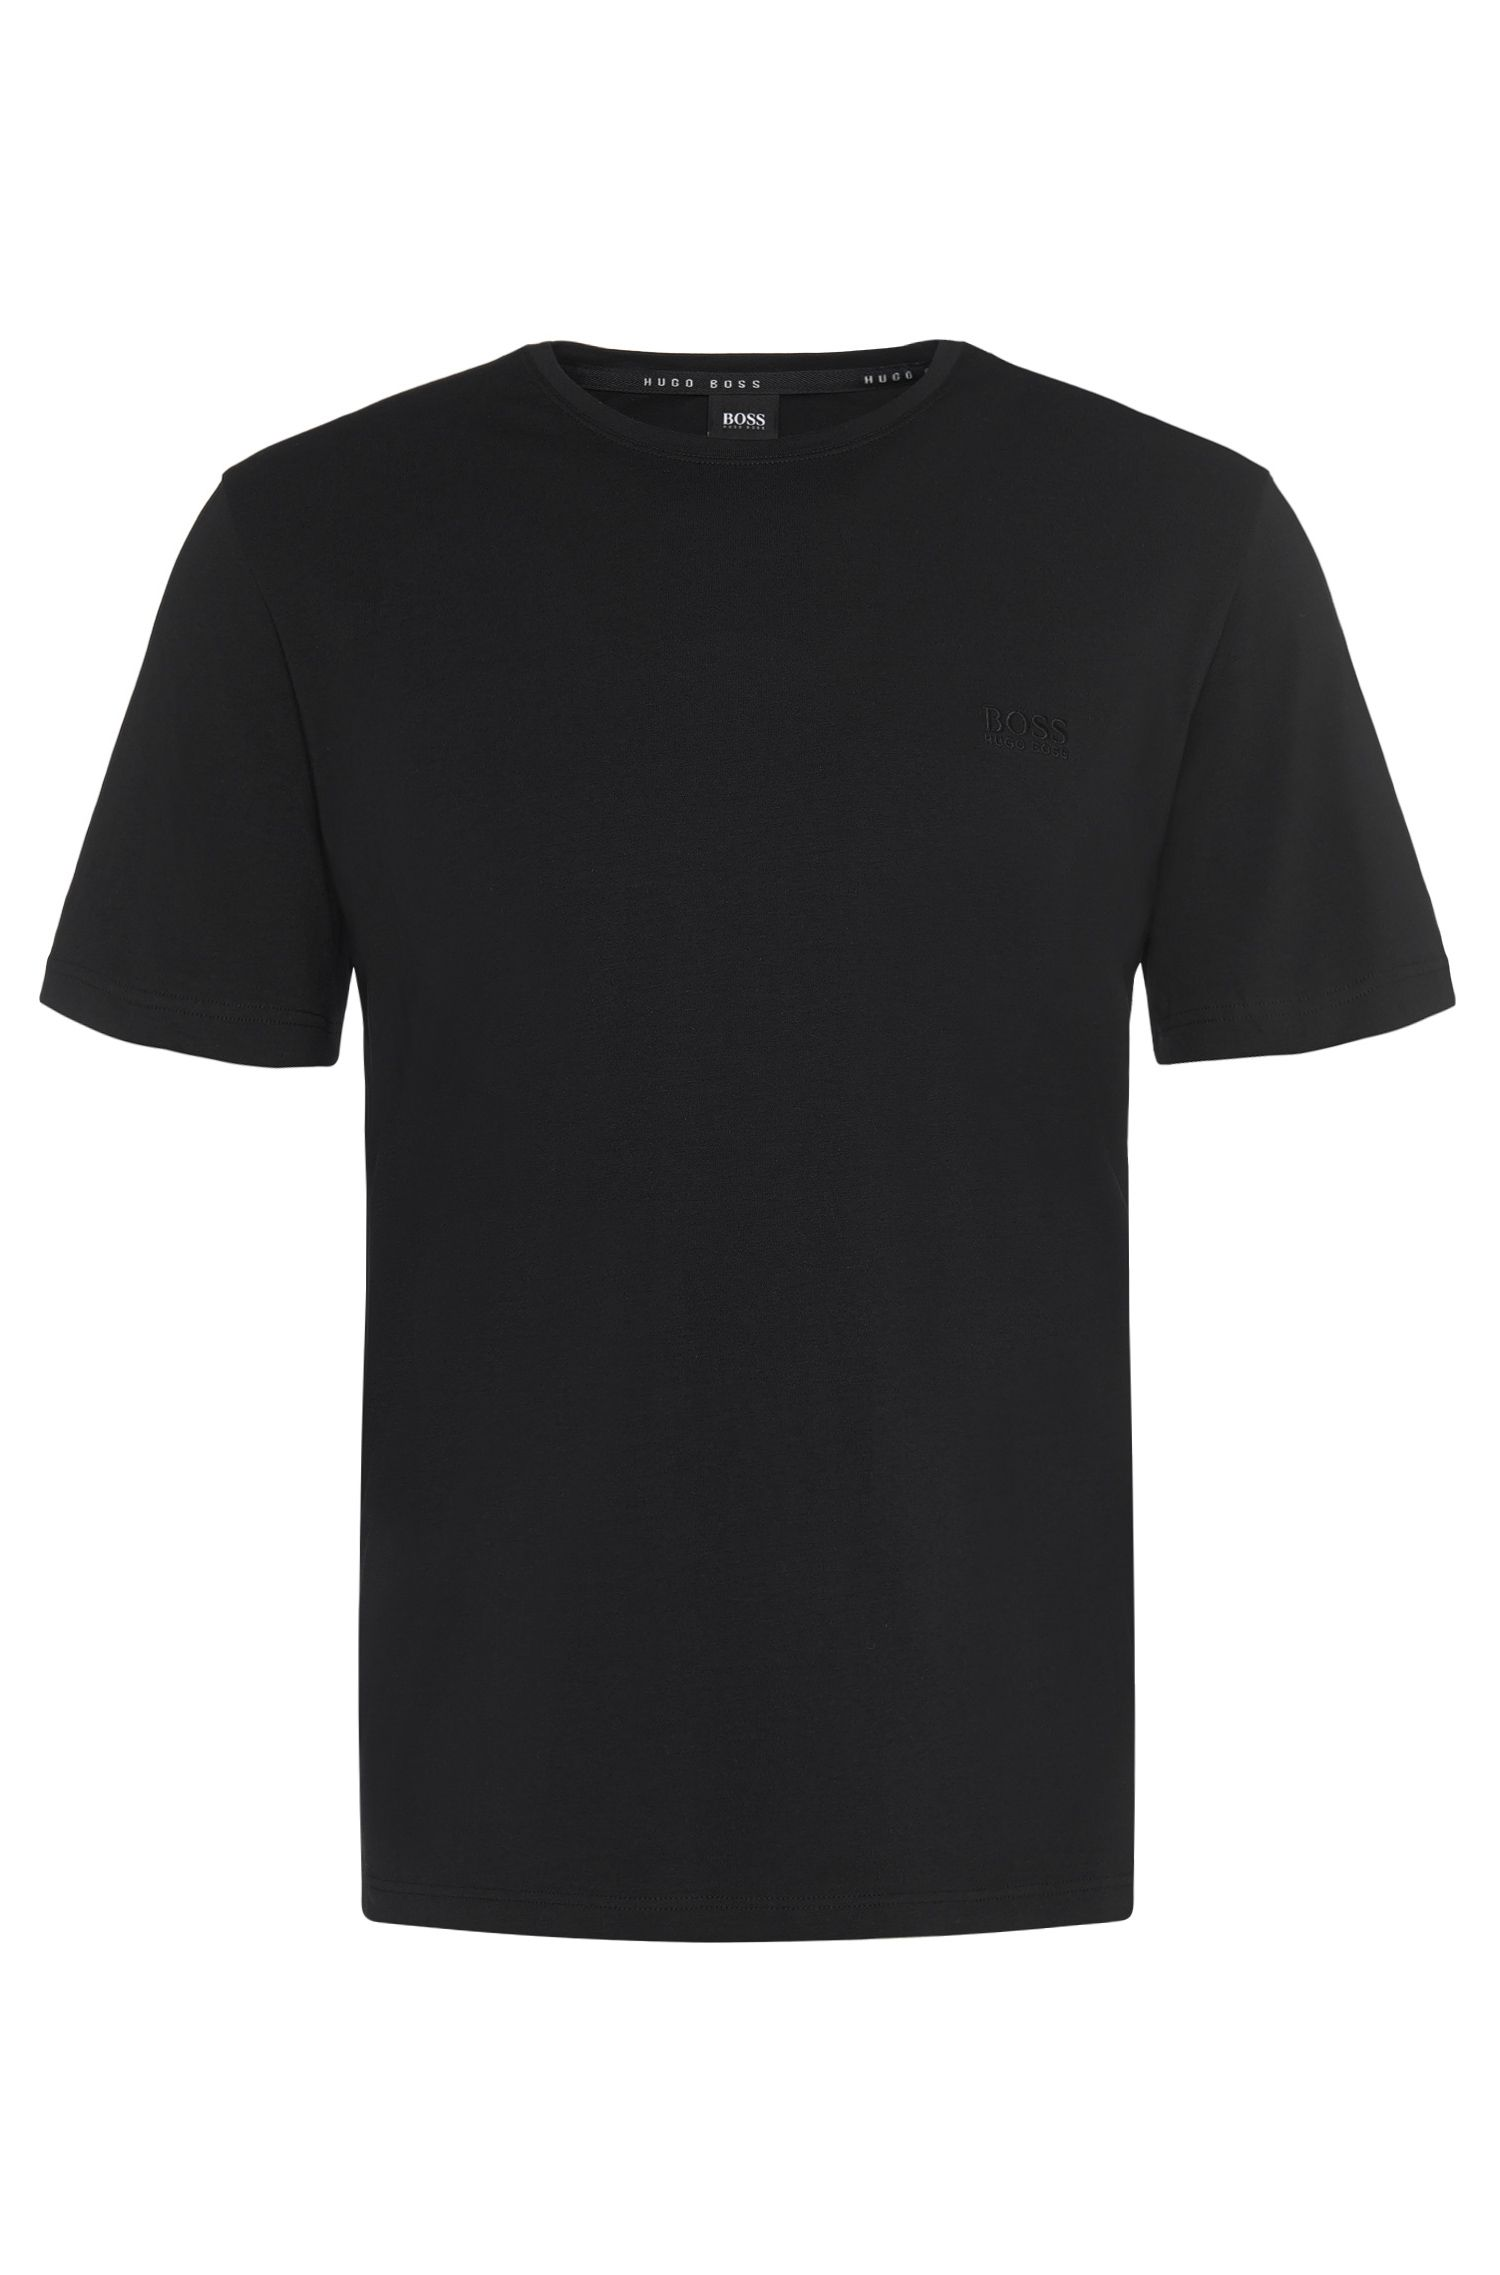 T-shirt in stretch cotton blend 'Shirt RN'